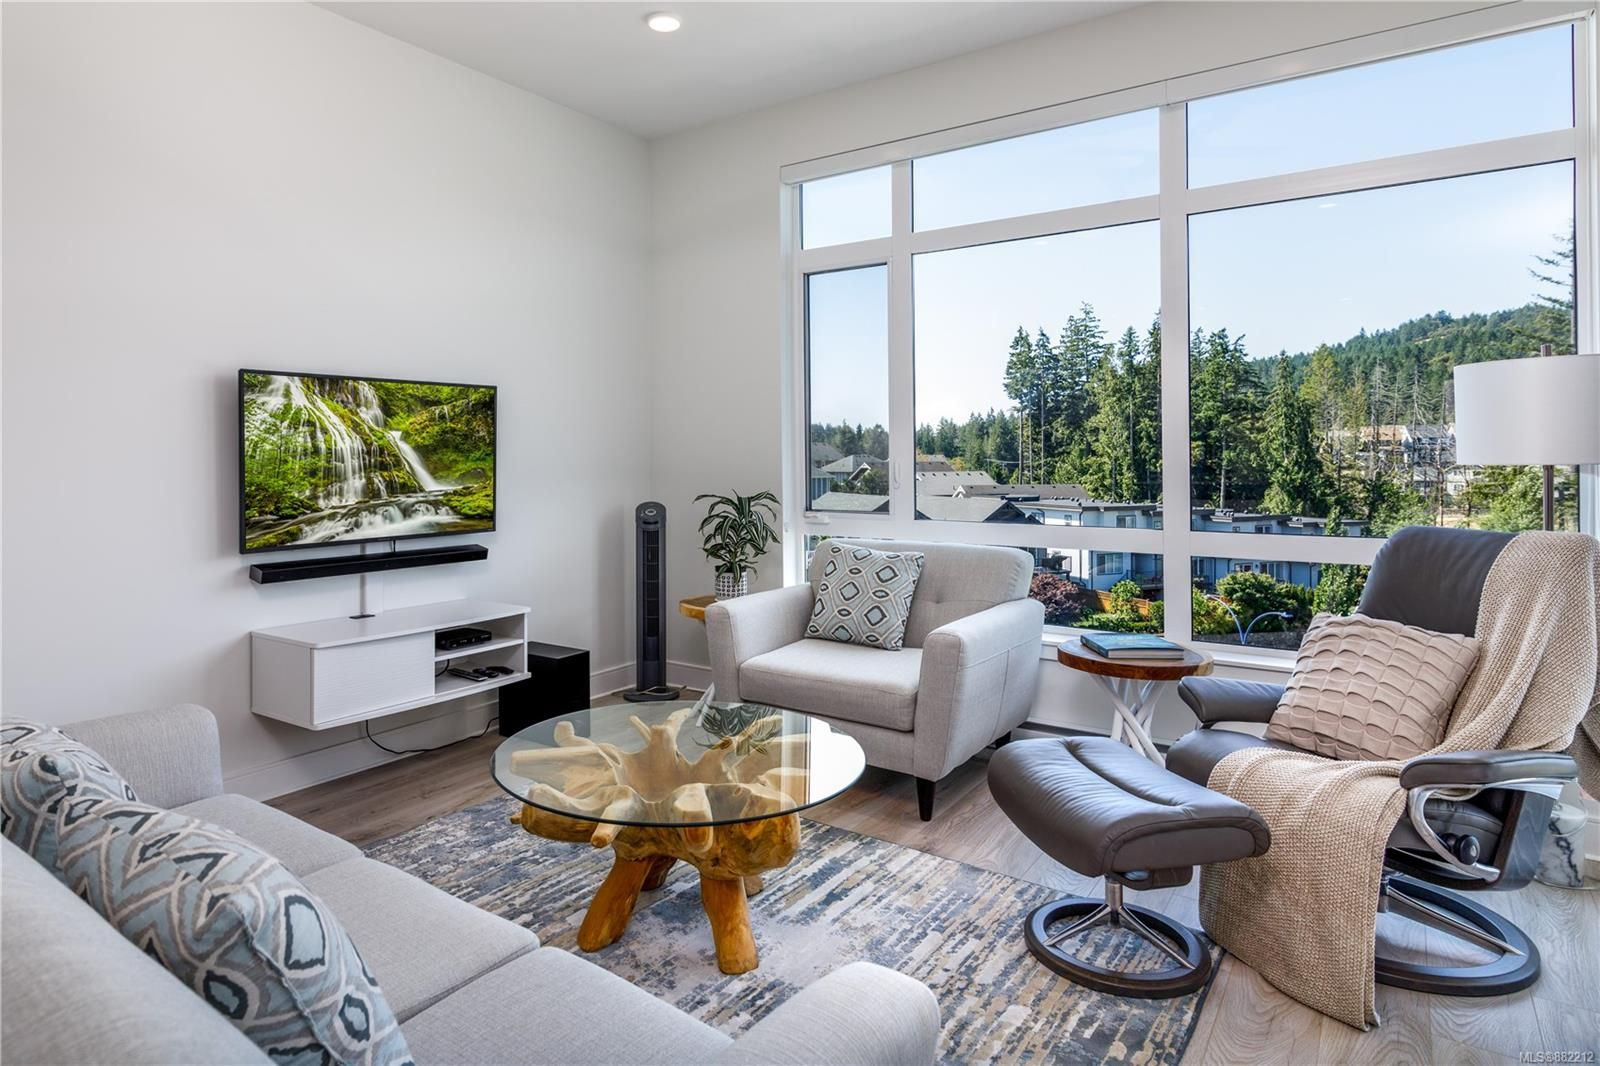 Main Photo: 603 1311 Lakepoint Way in : La Westhills Condo for sale (Langford)  : MLS®# 882212